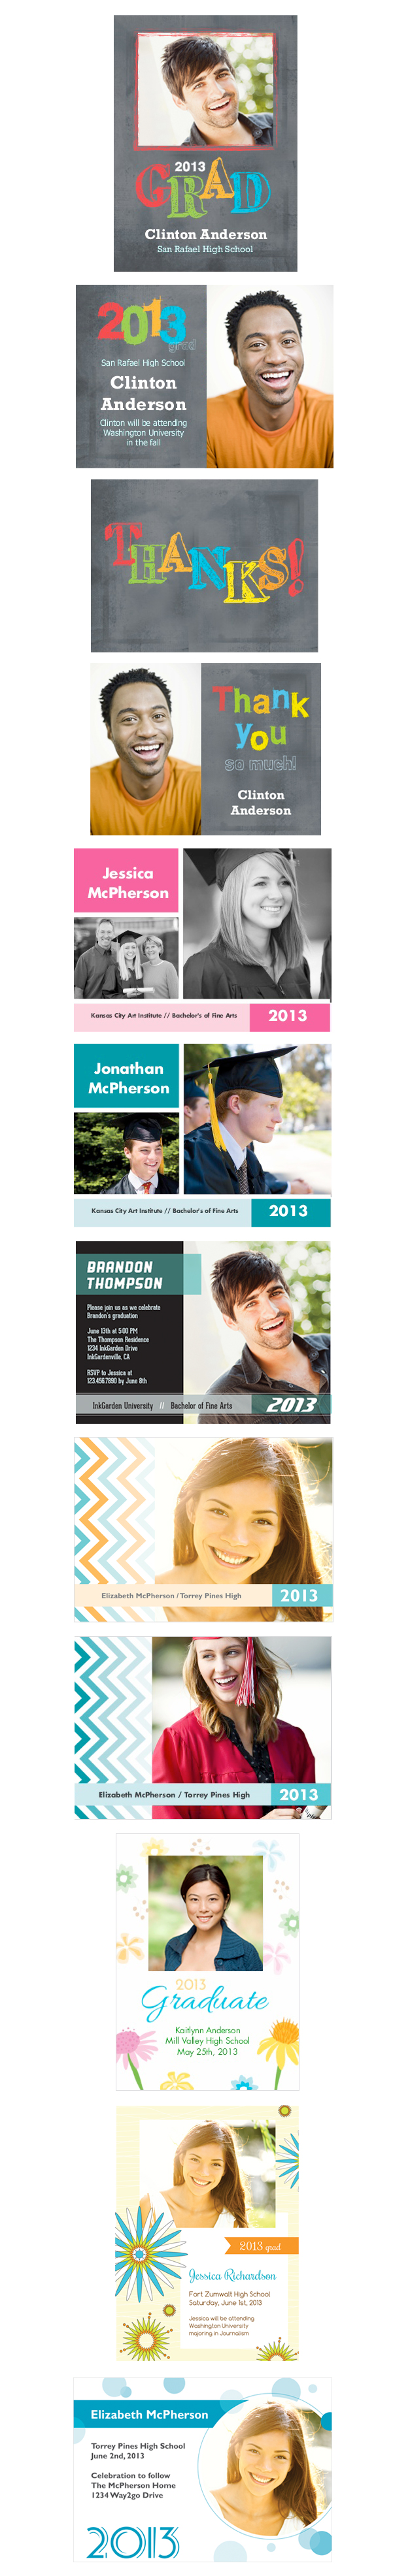 Grad_announcements